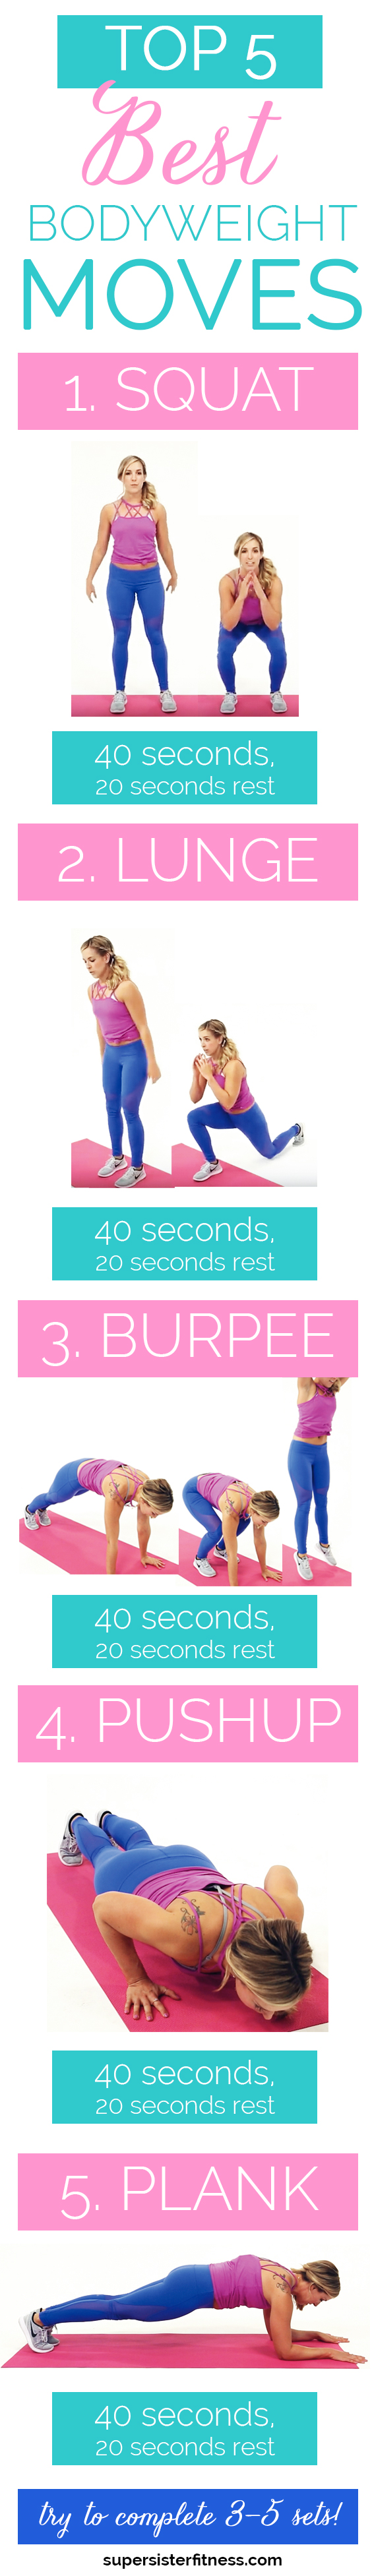 best bodyweight exercises printable workout